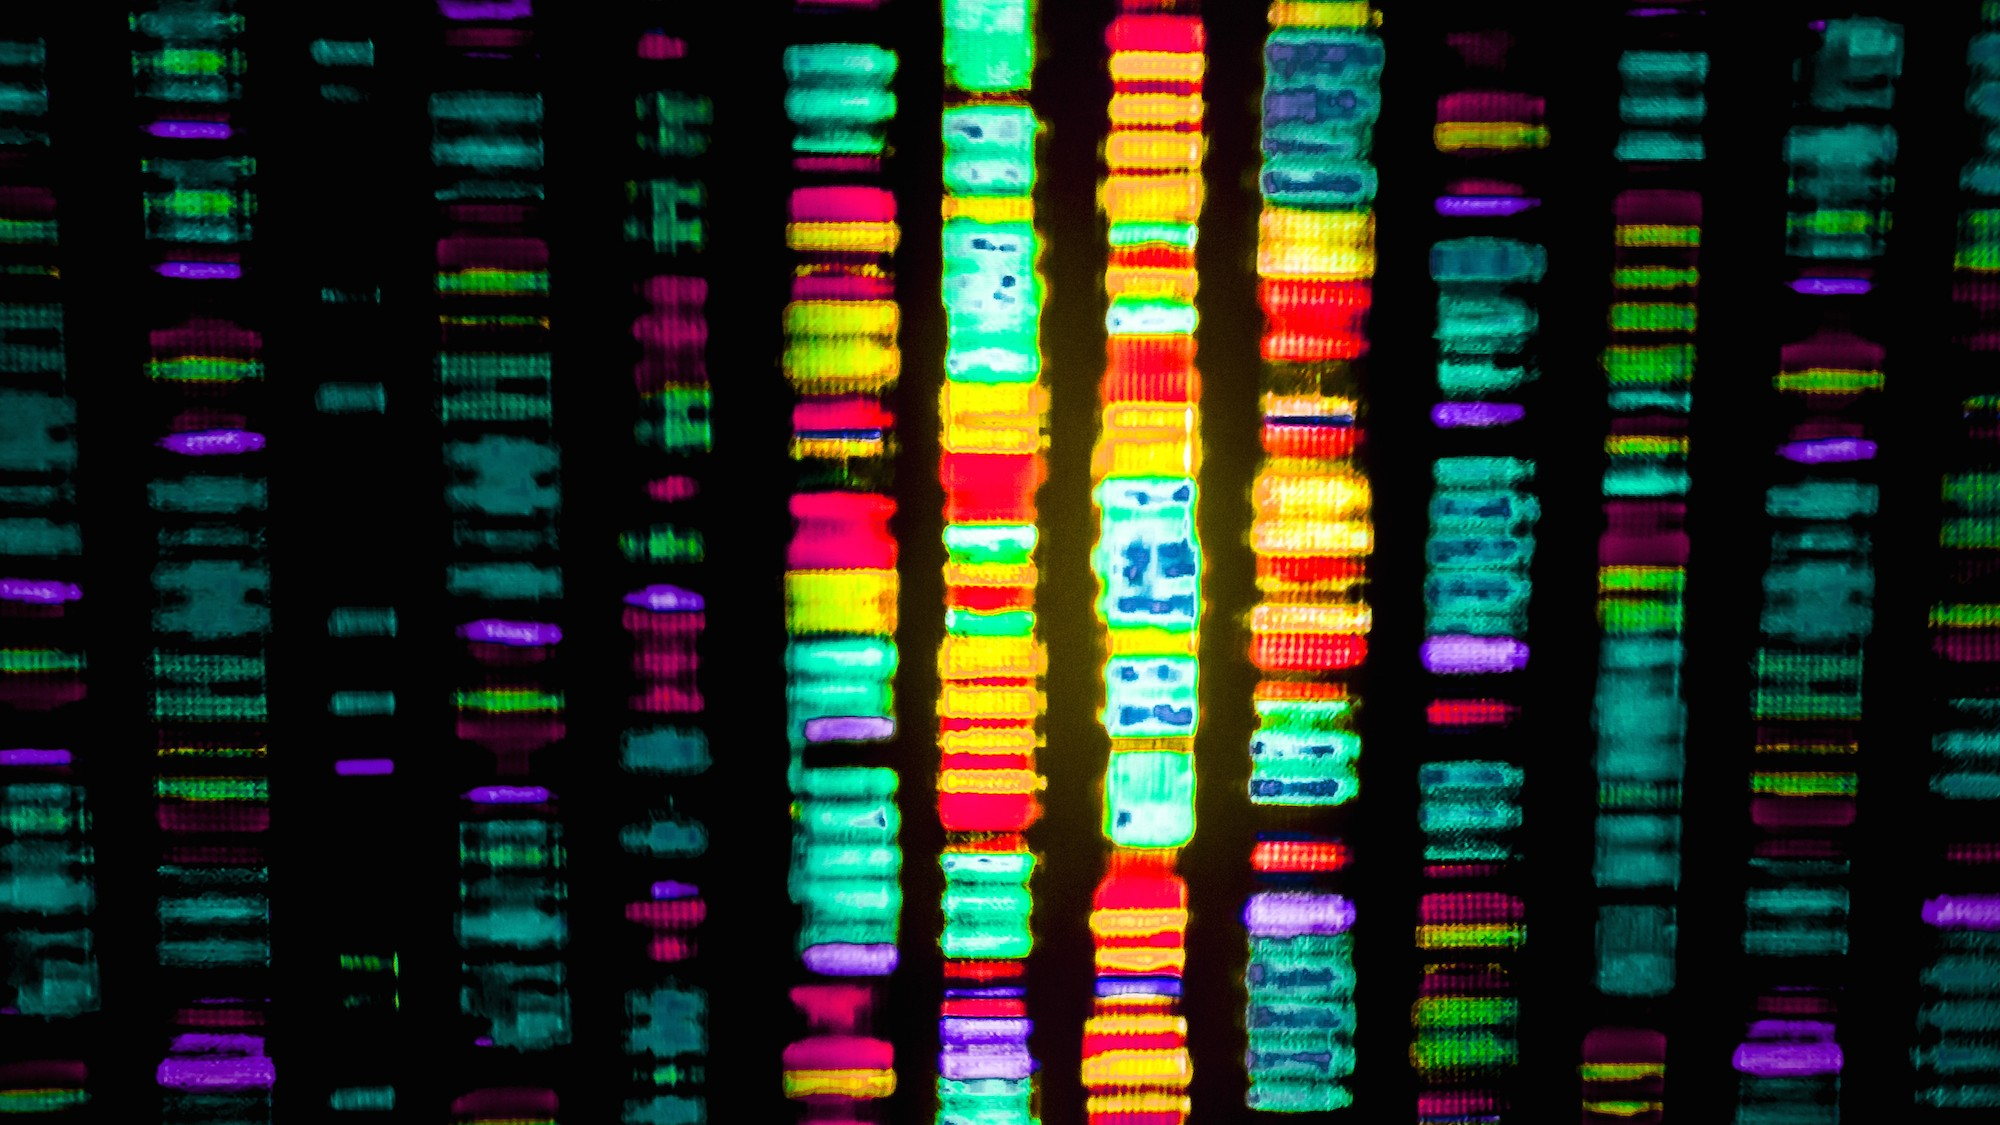 The UK's Plan to Sequence 100,000 Human Genomes